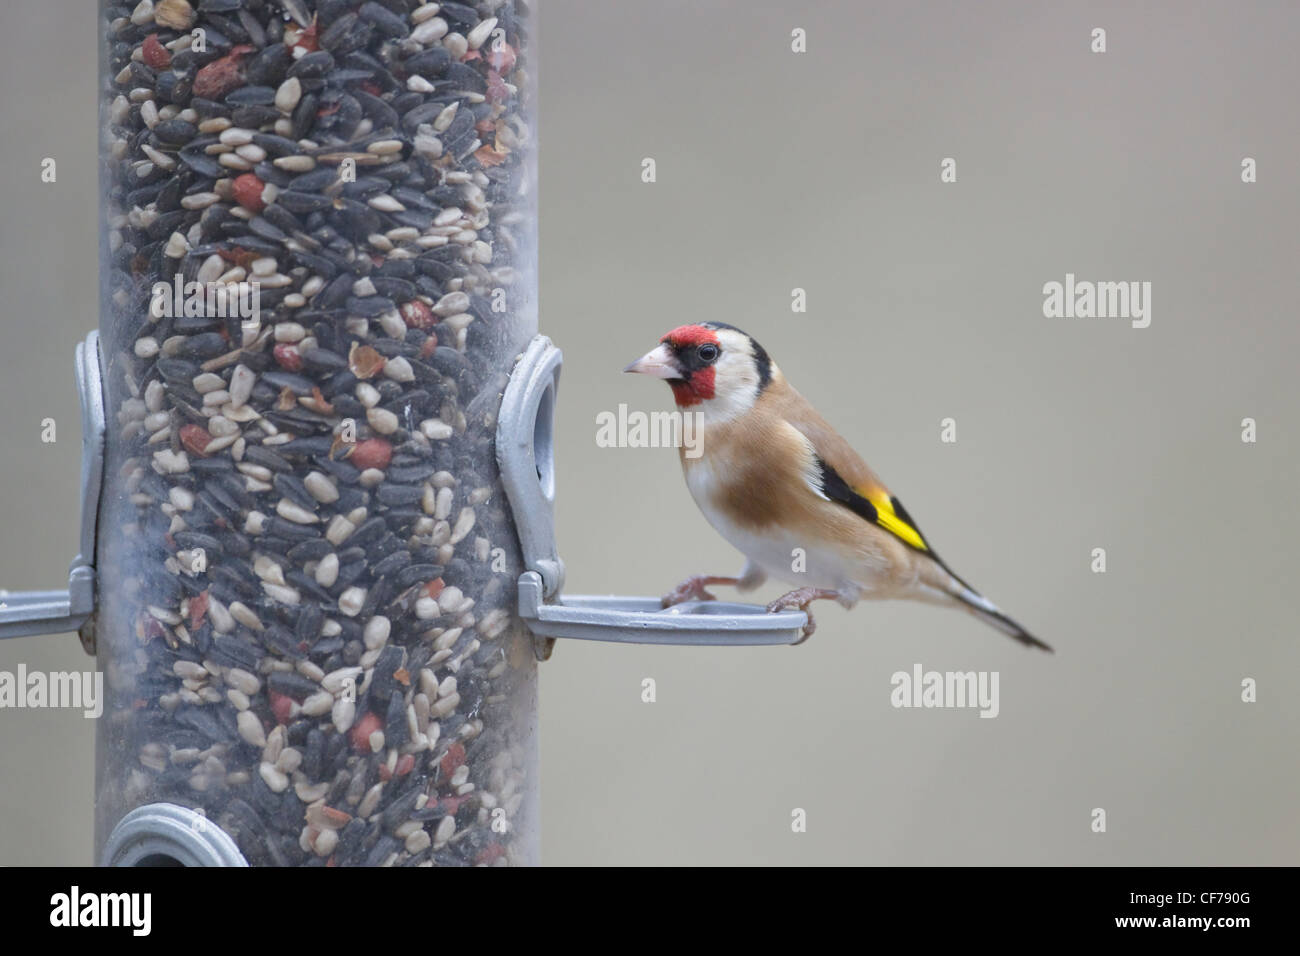 Goldfinch - on bird feeder Carduelis carduelis Hampshire, UK BI022266 - Stock Image